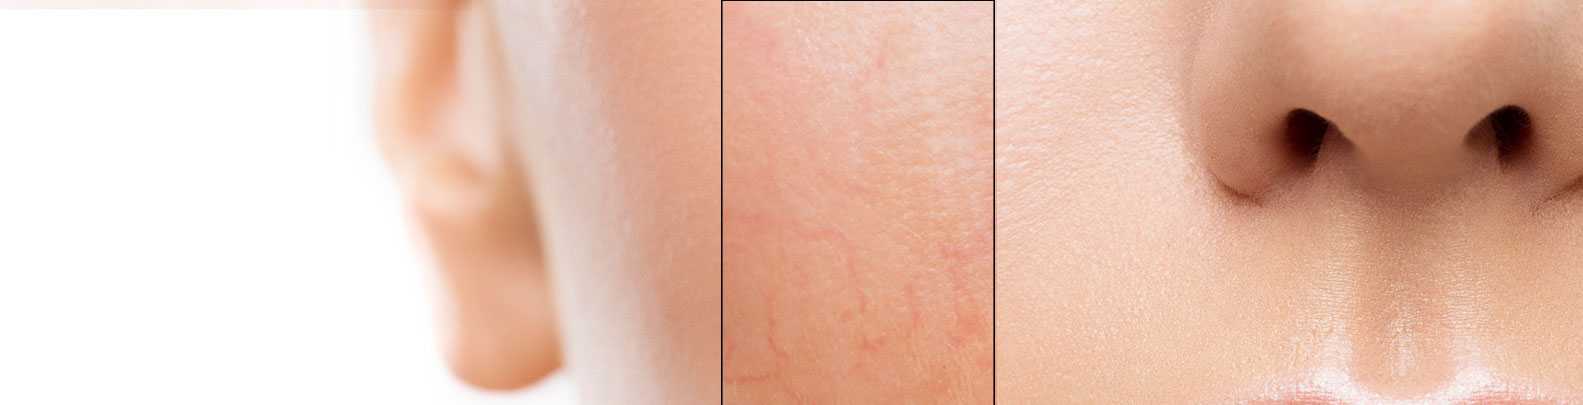 rosacea treatment in cork